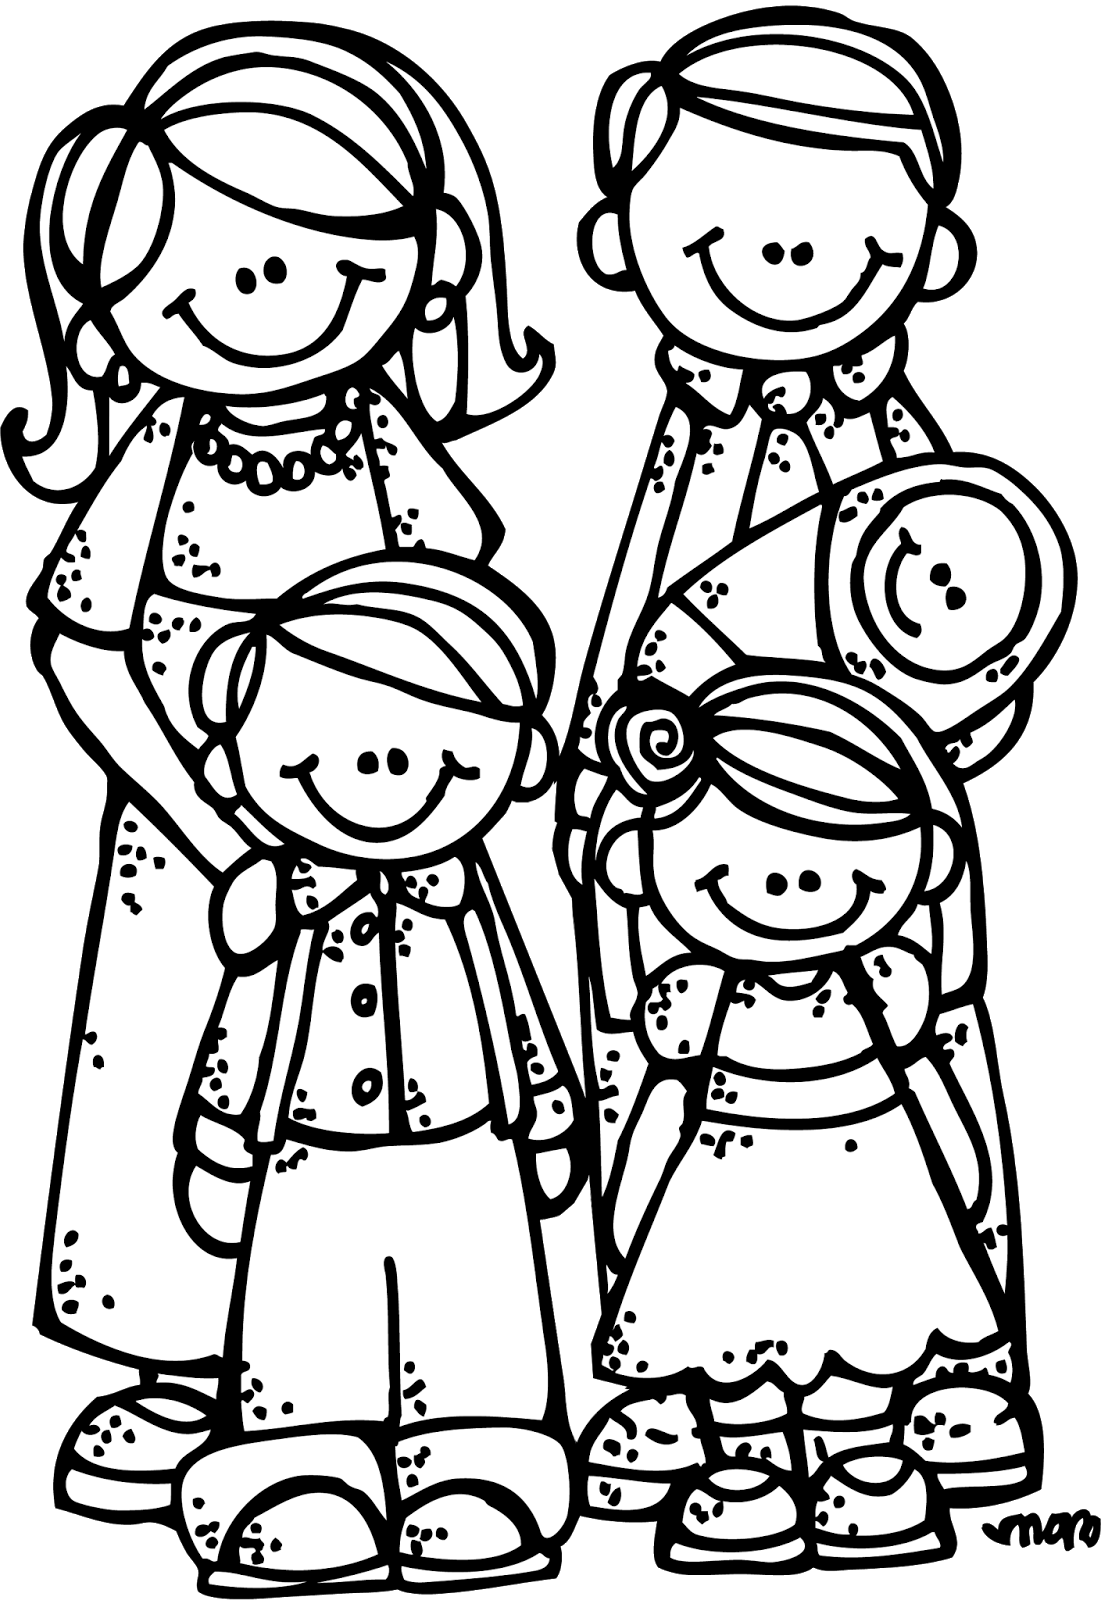 image black and white Grandmother clipart black and white. Melonheadz lds illustrating new